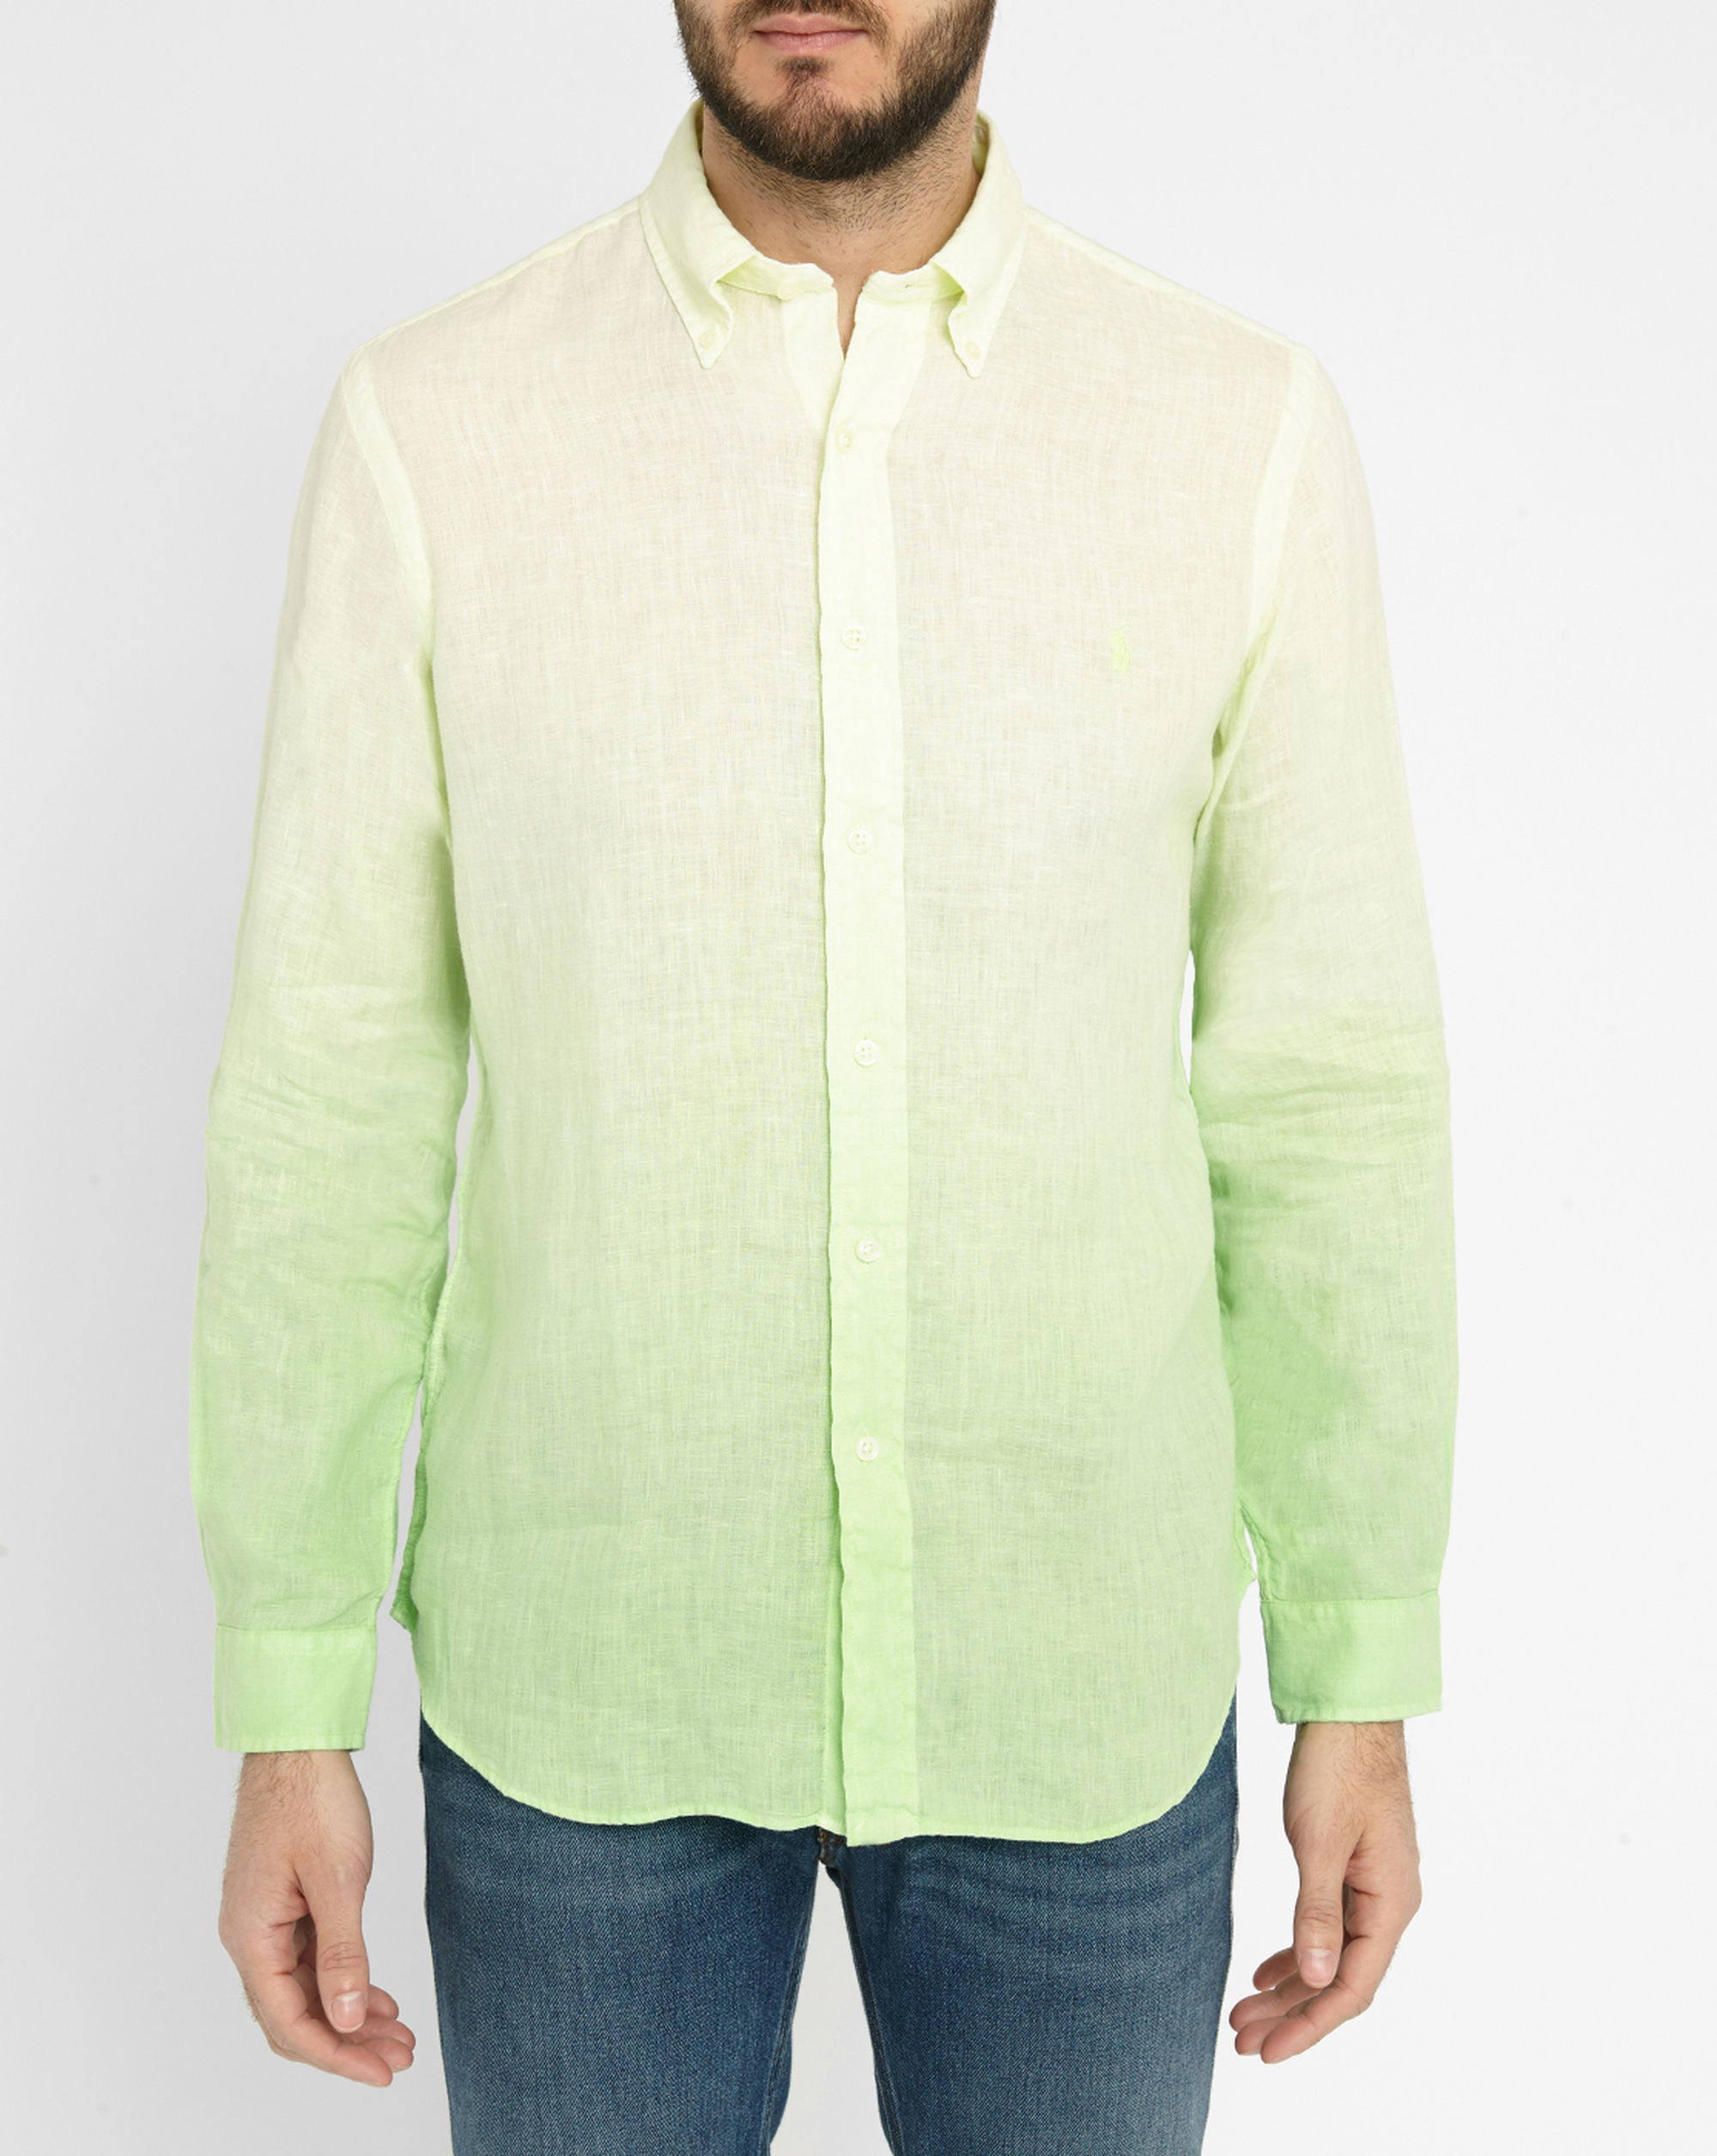 how to make lime green dye